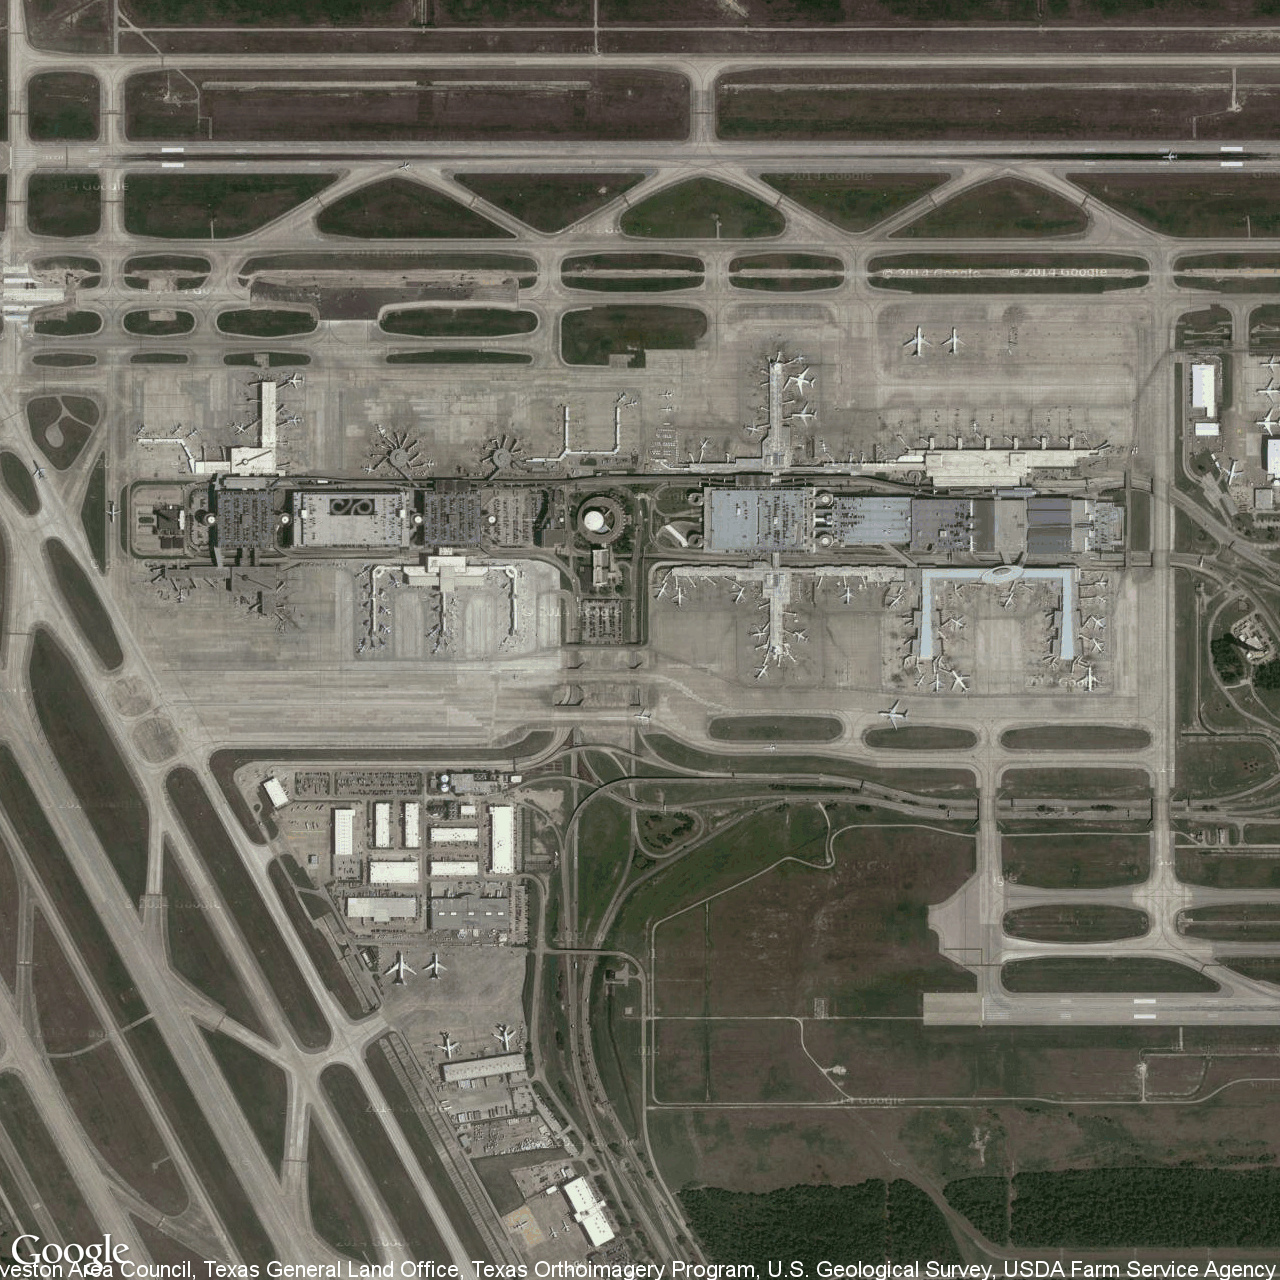 George Bush Intercontinental/houston